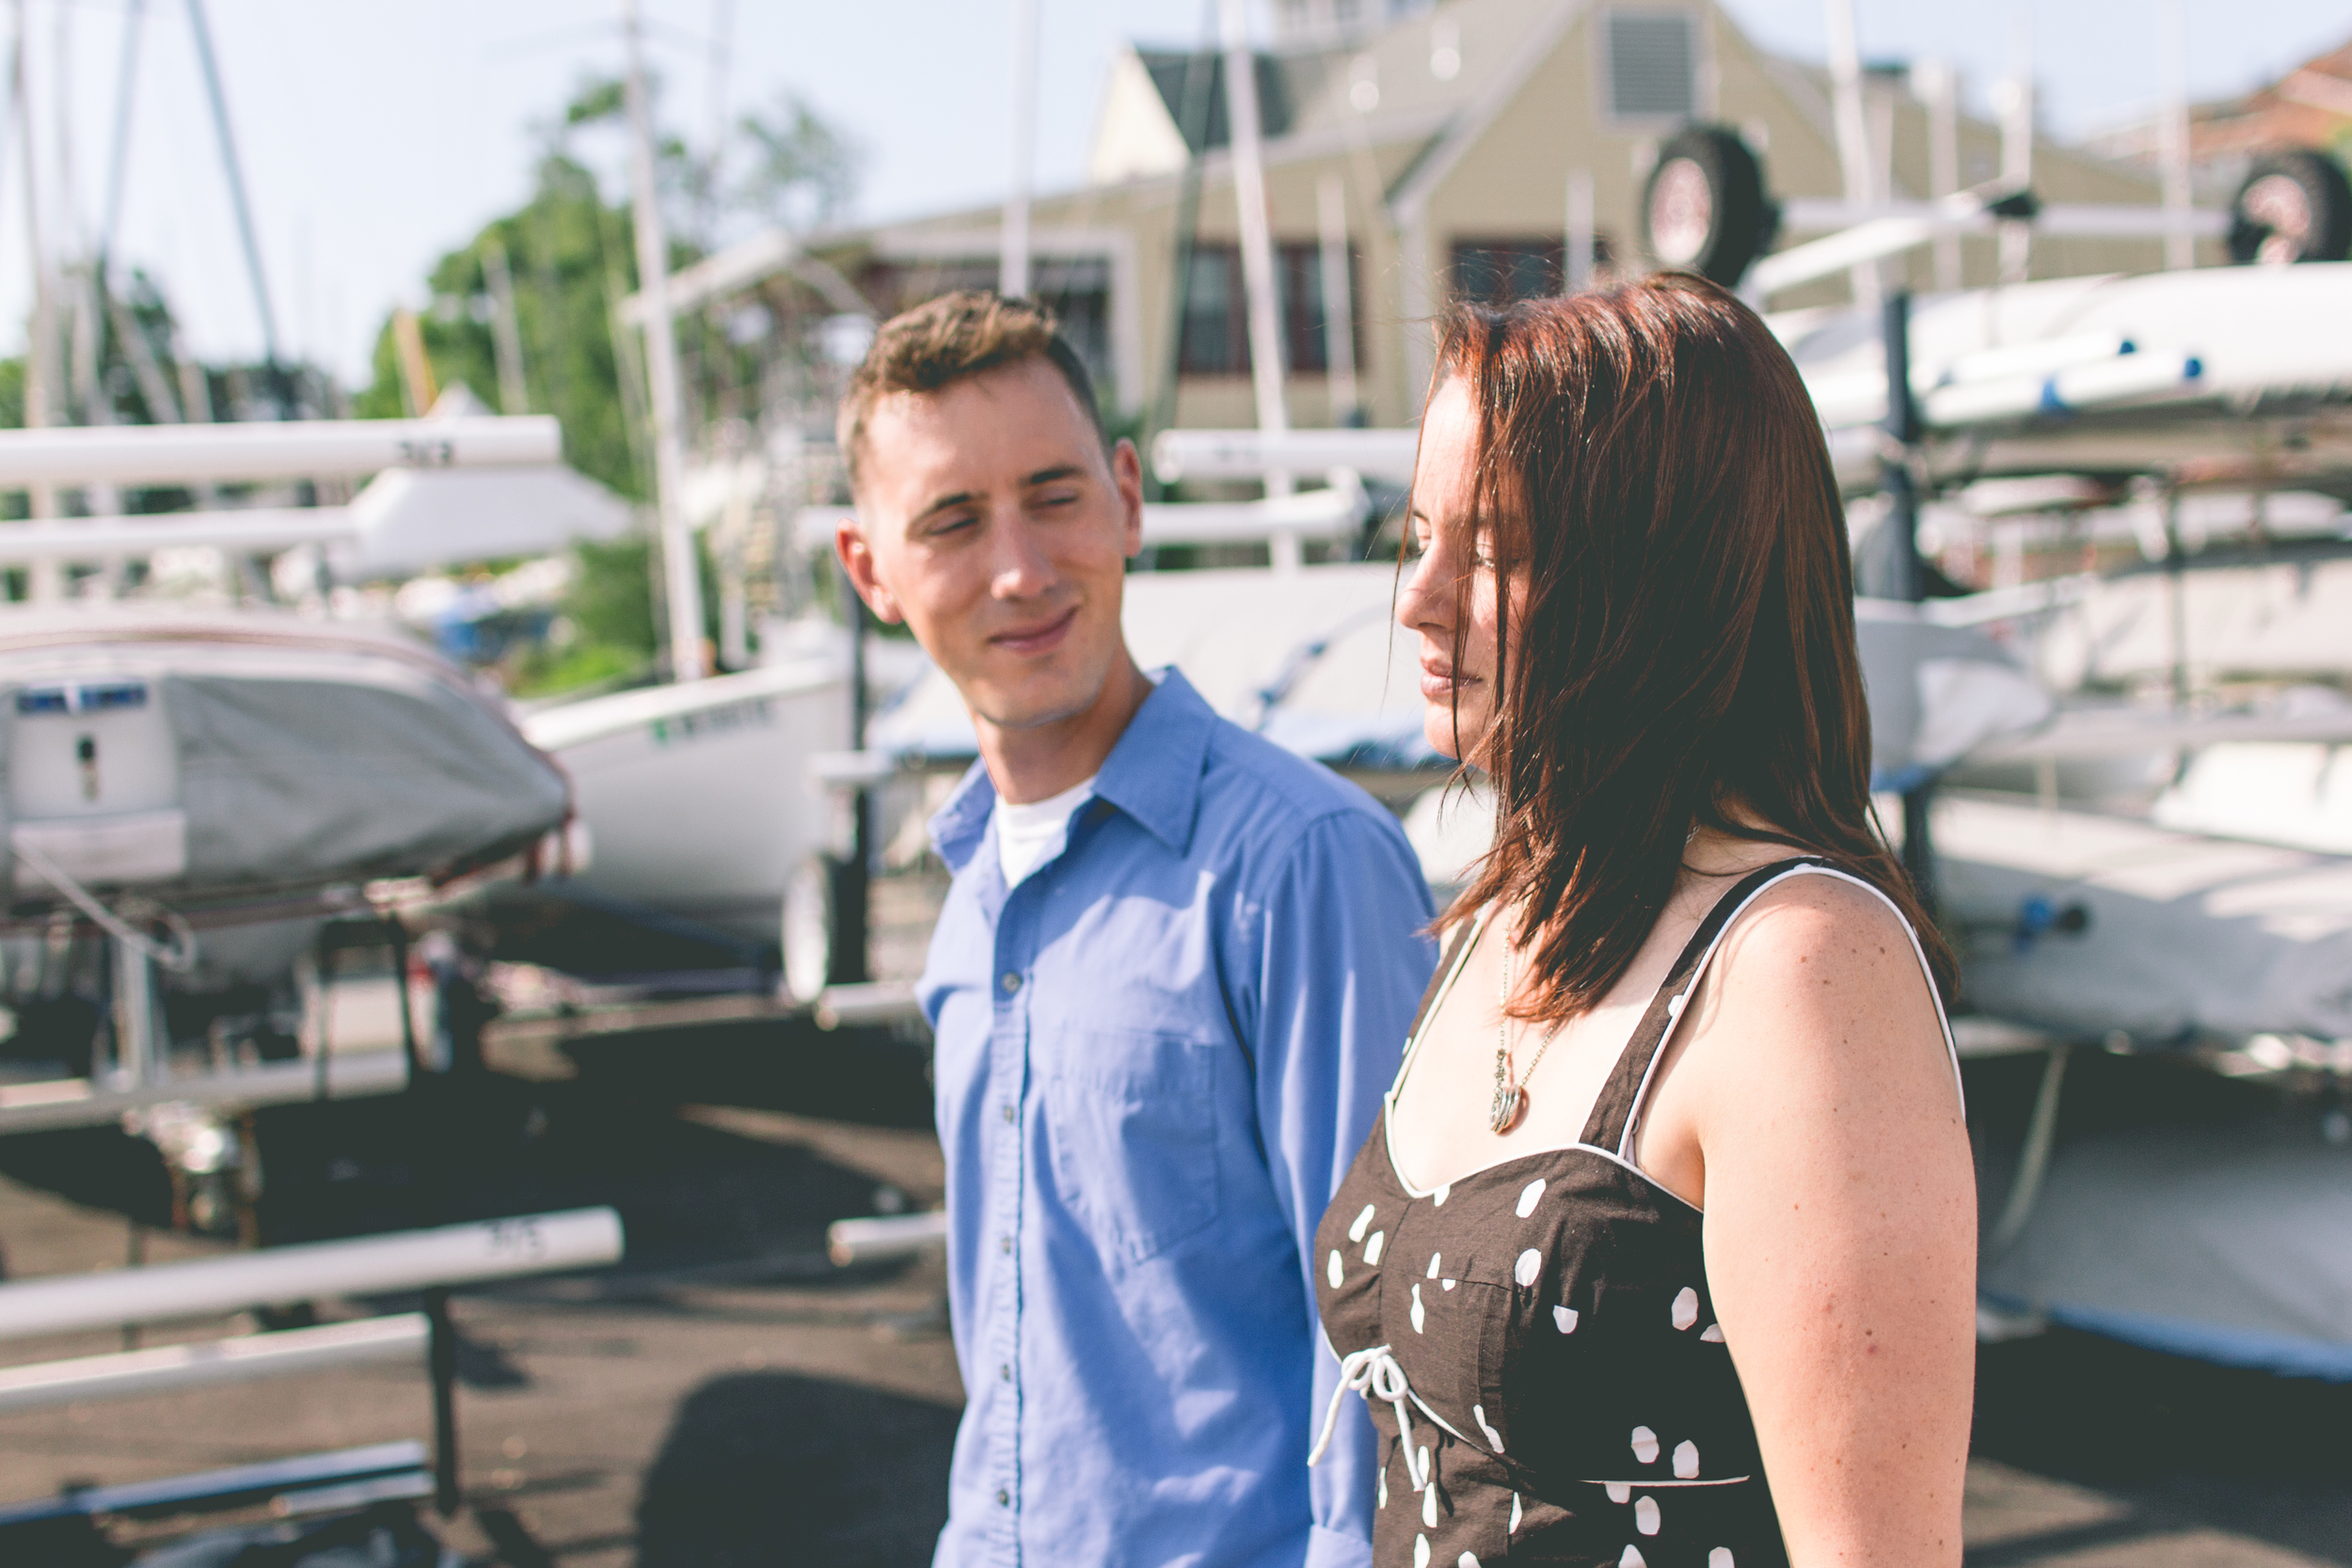 Annapolis_Cathee_Tony_Engagement_Photography-9.jpg